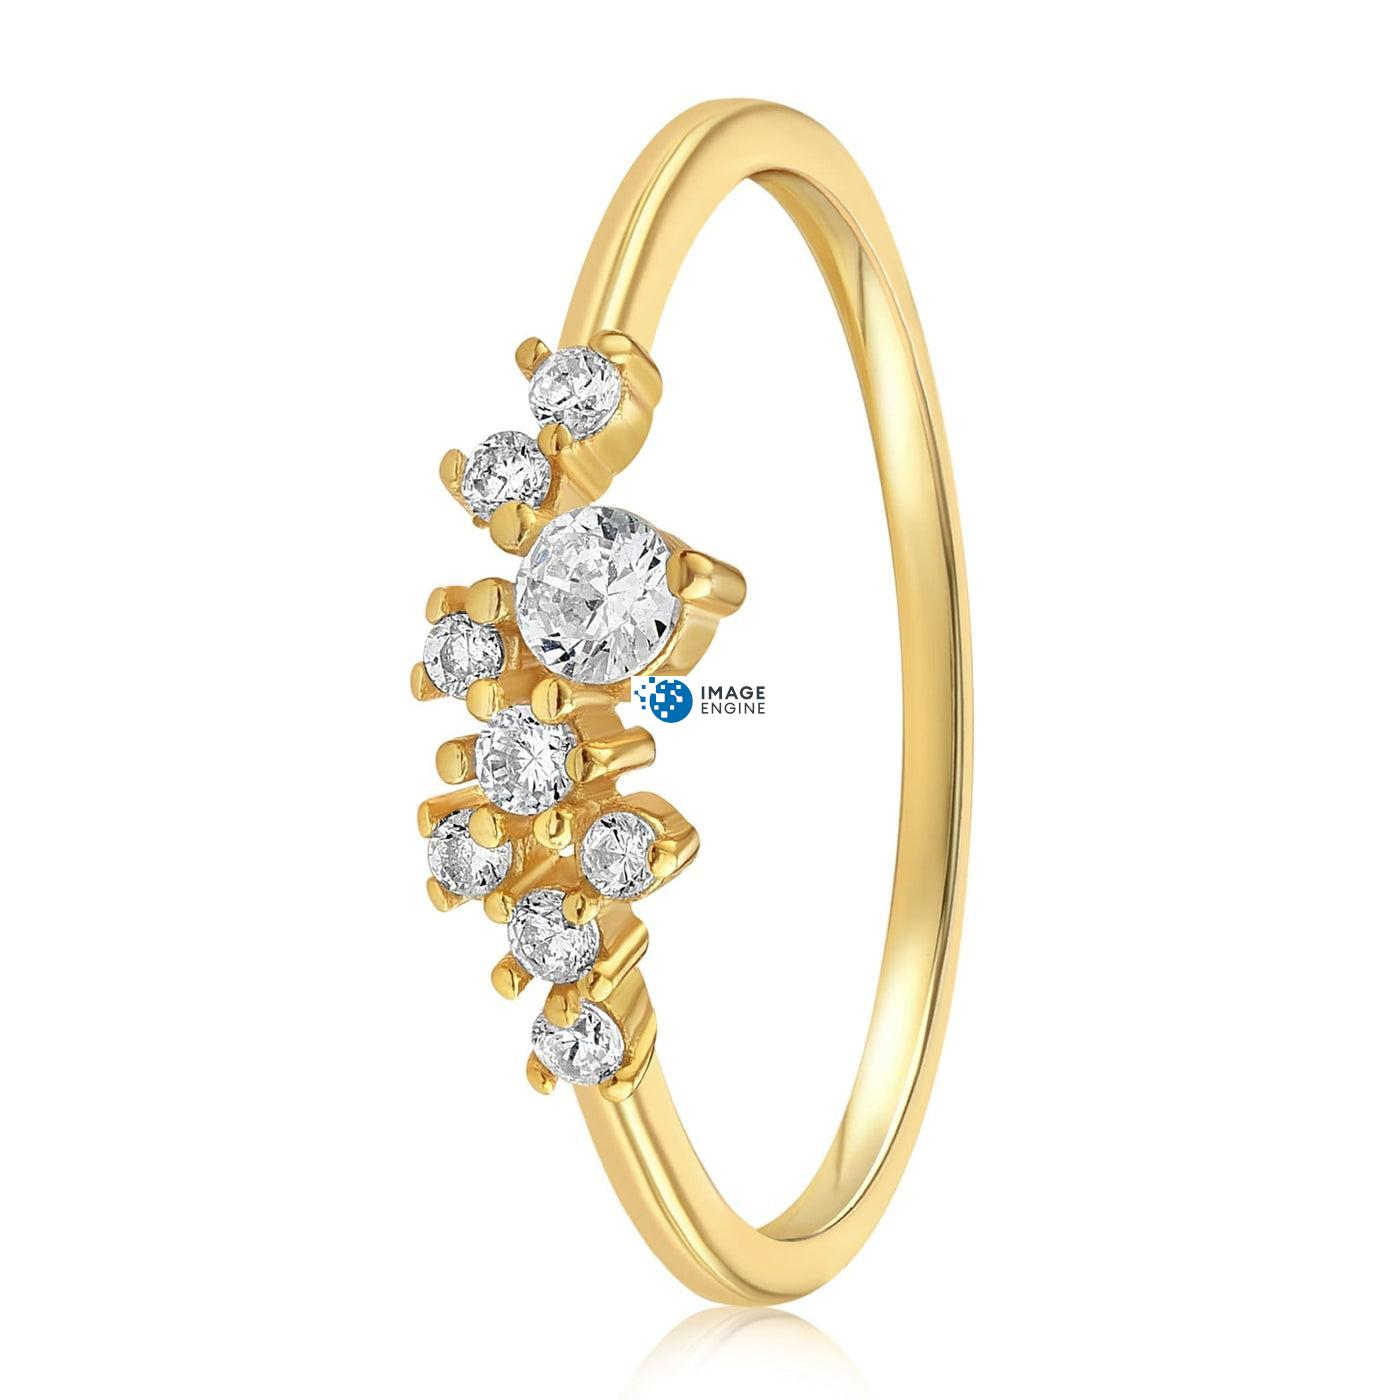 Sasha Sparkle Ring - Side View - 18K Yellow Gold Vermeil